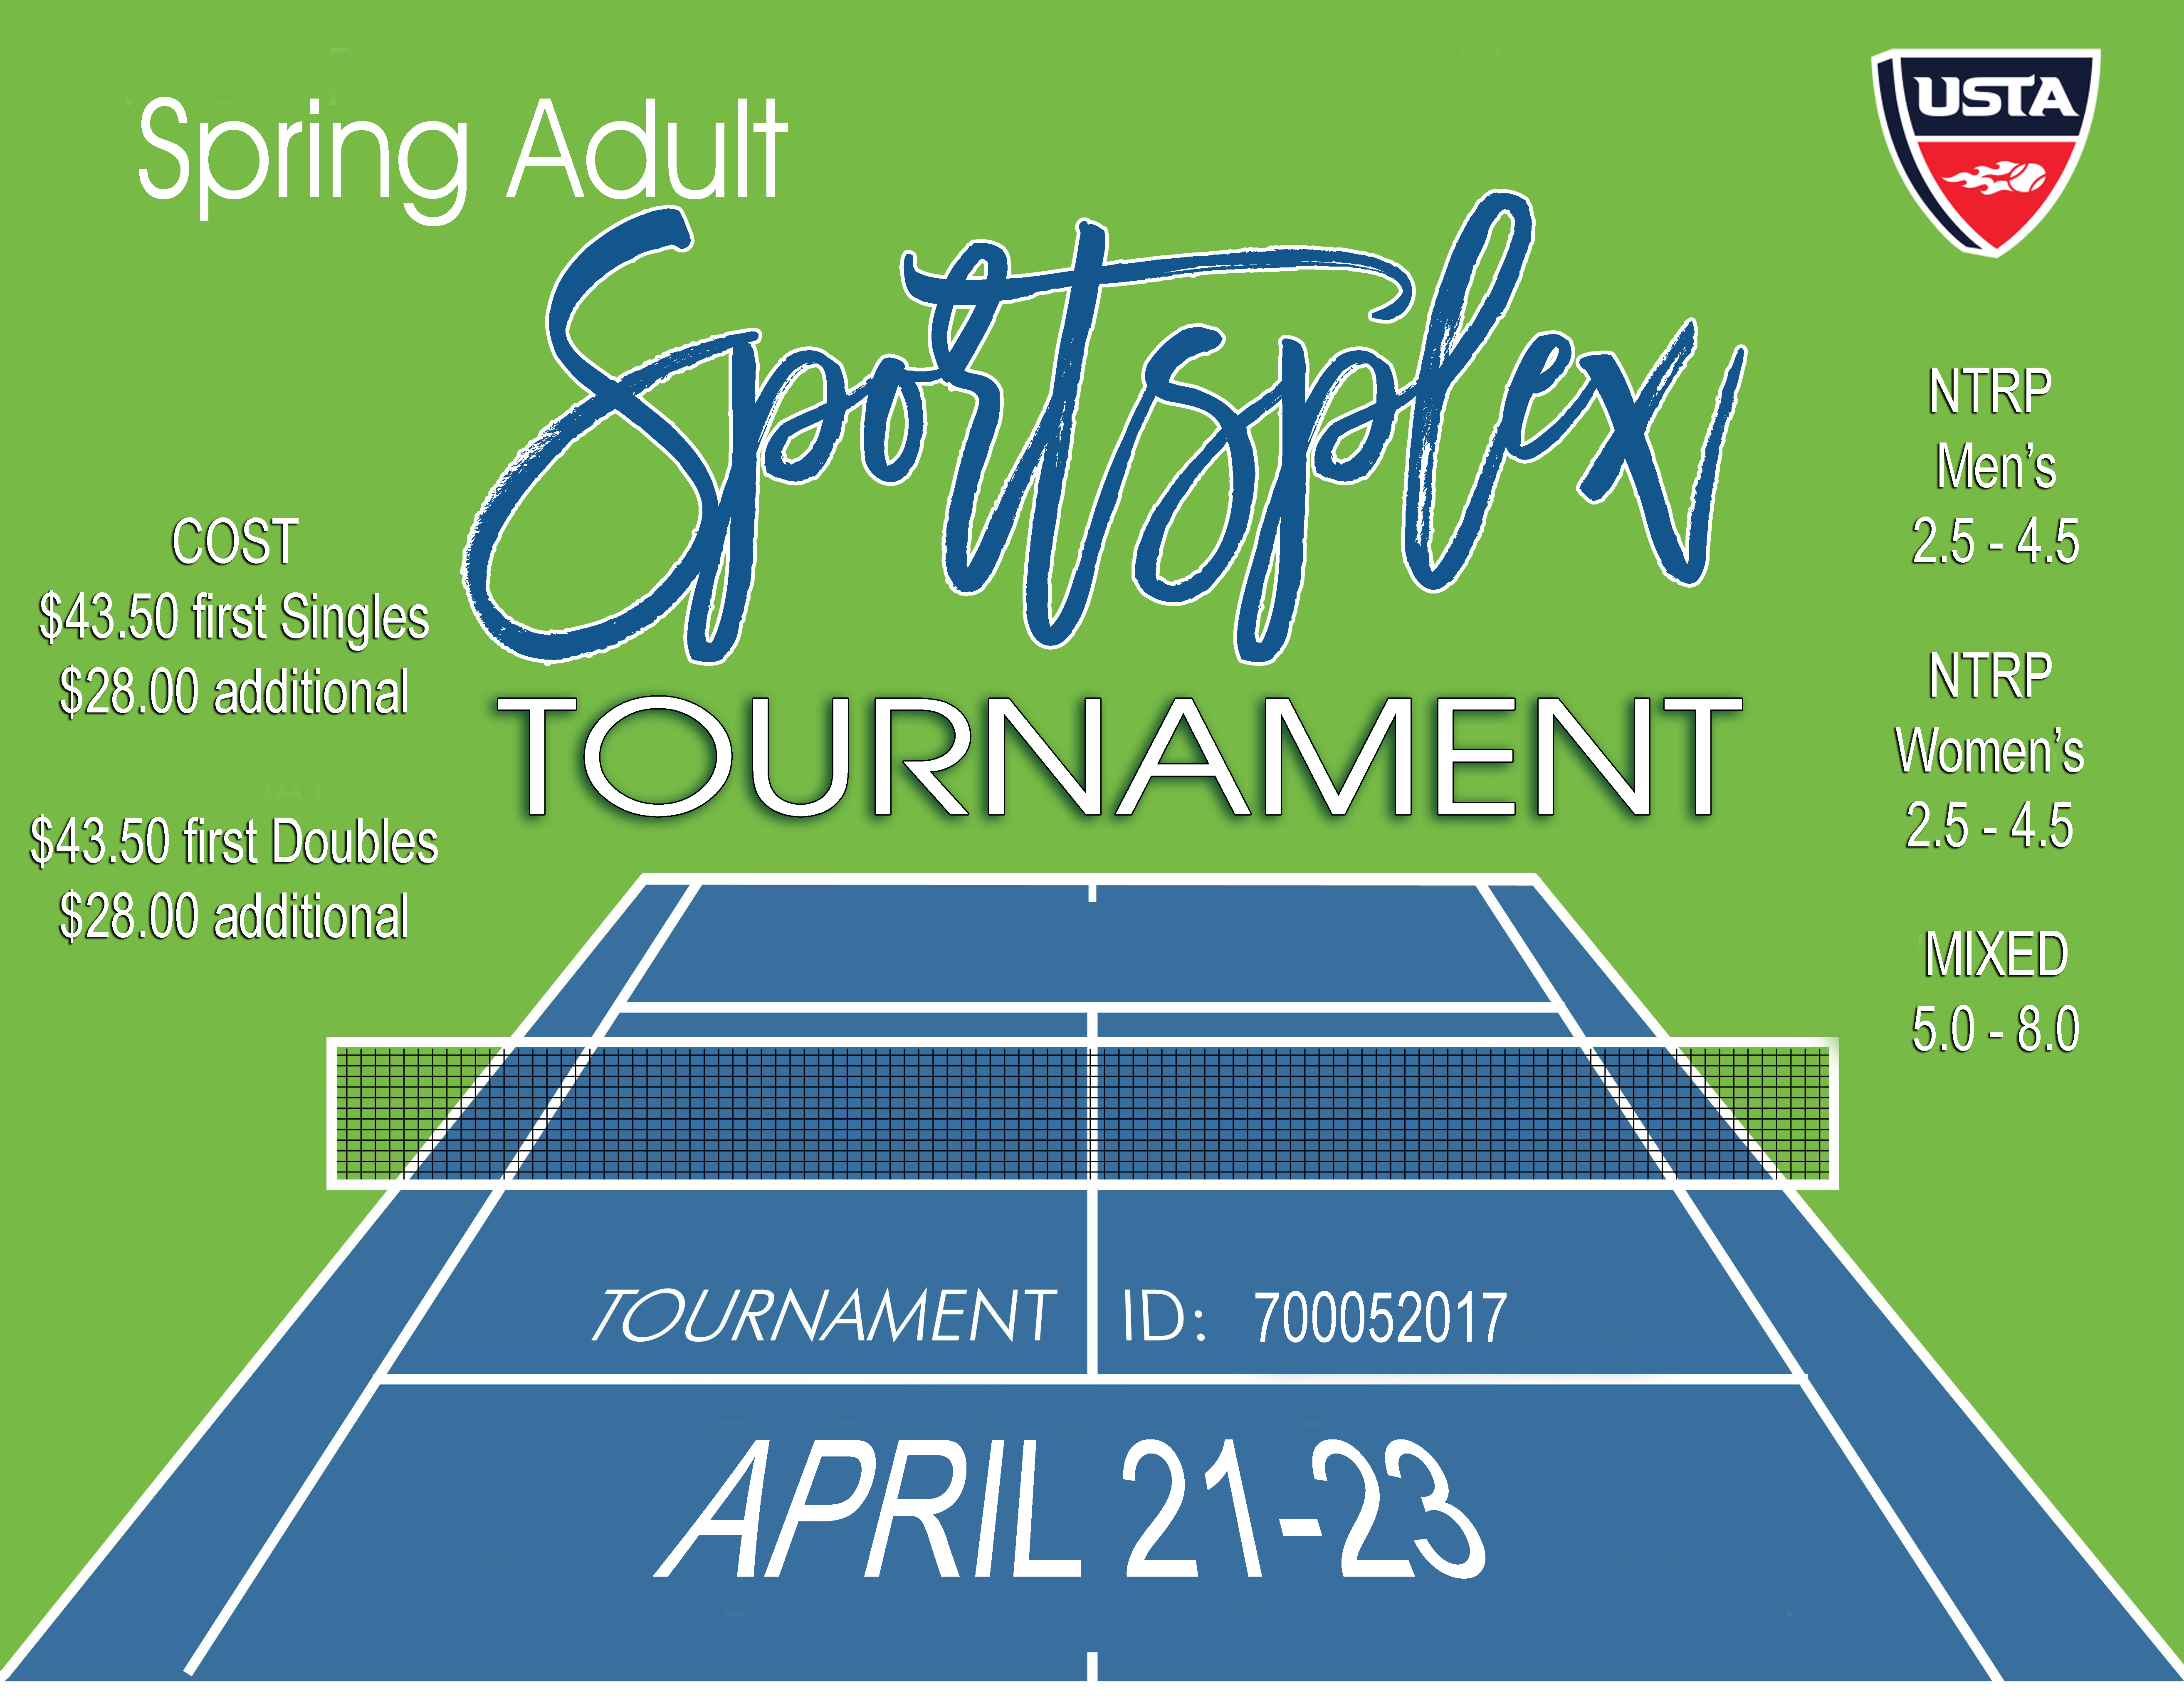 The City of Laurel, Spring Adult Tennis Tournament